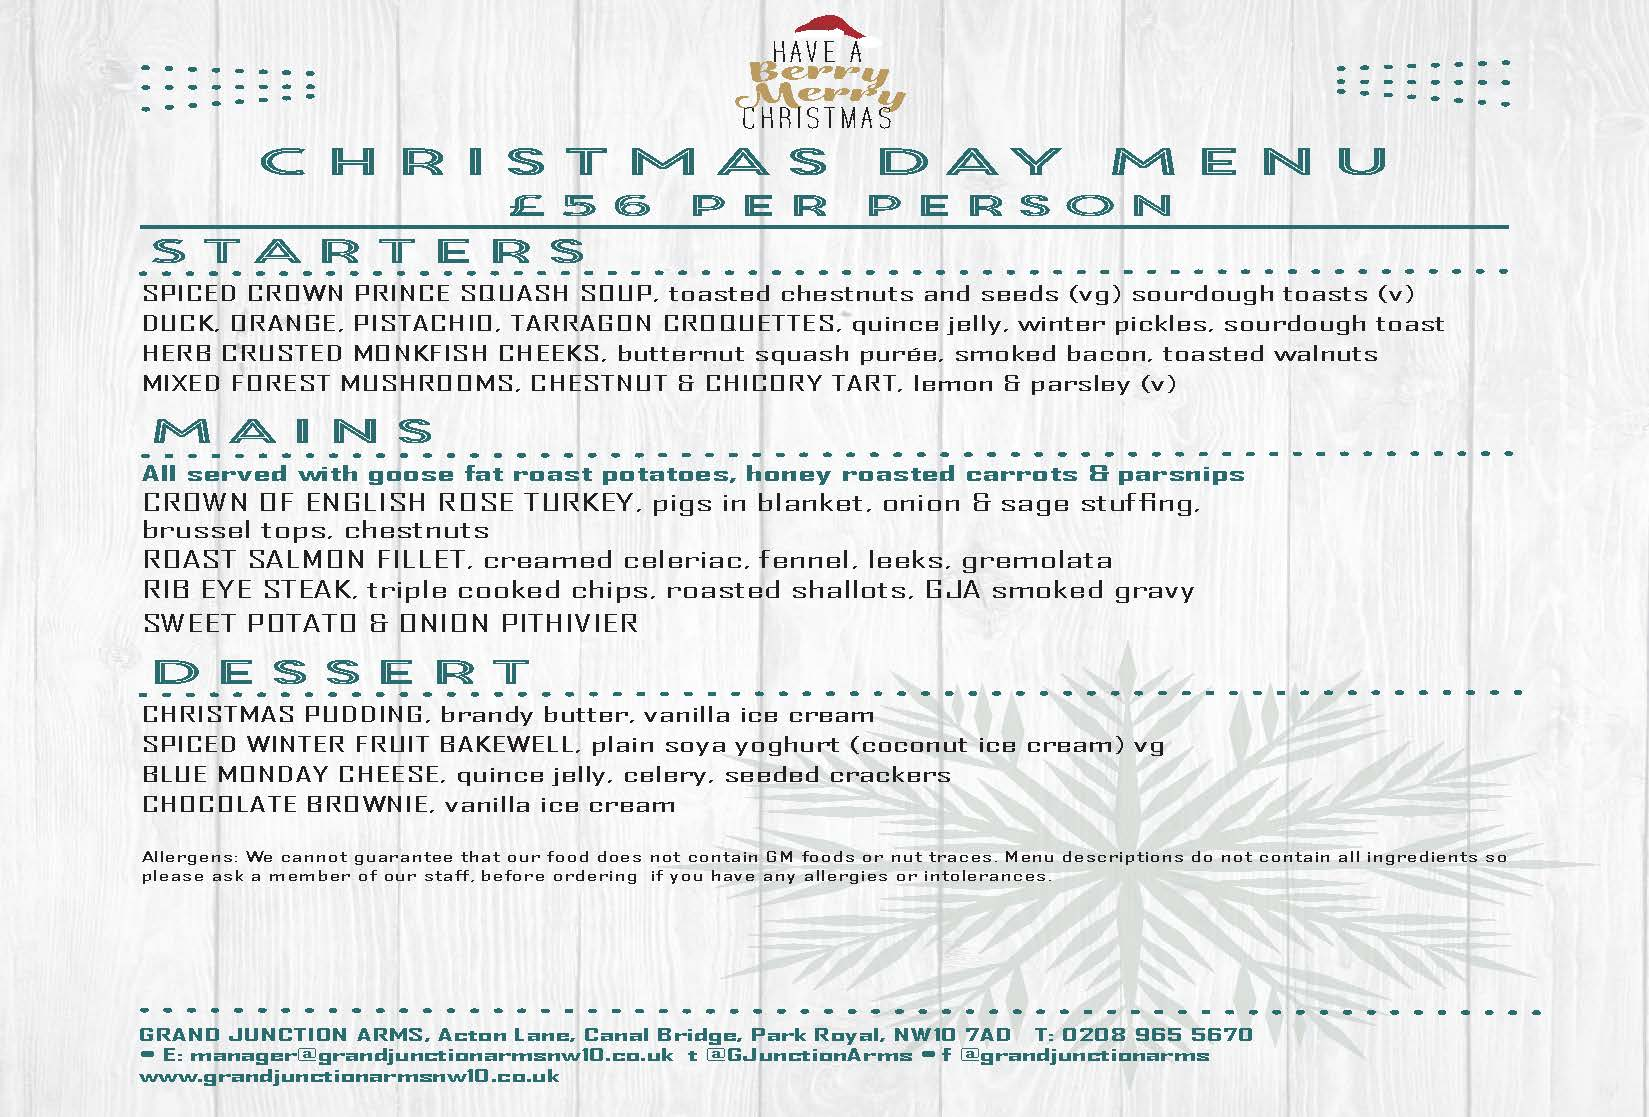 A4 double sided A4CHRISTMASDAYMENU055_Pa